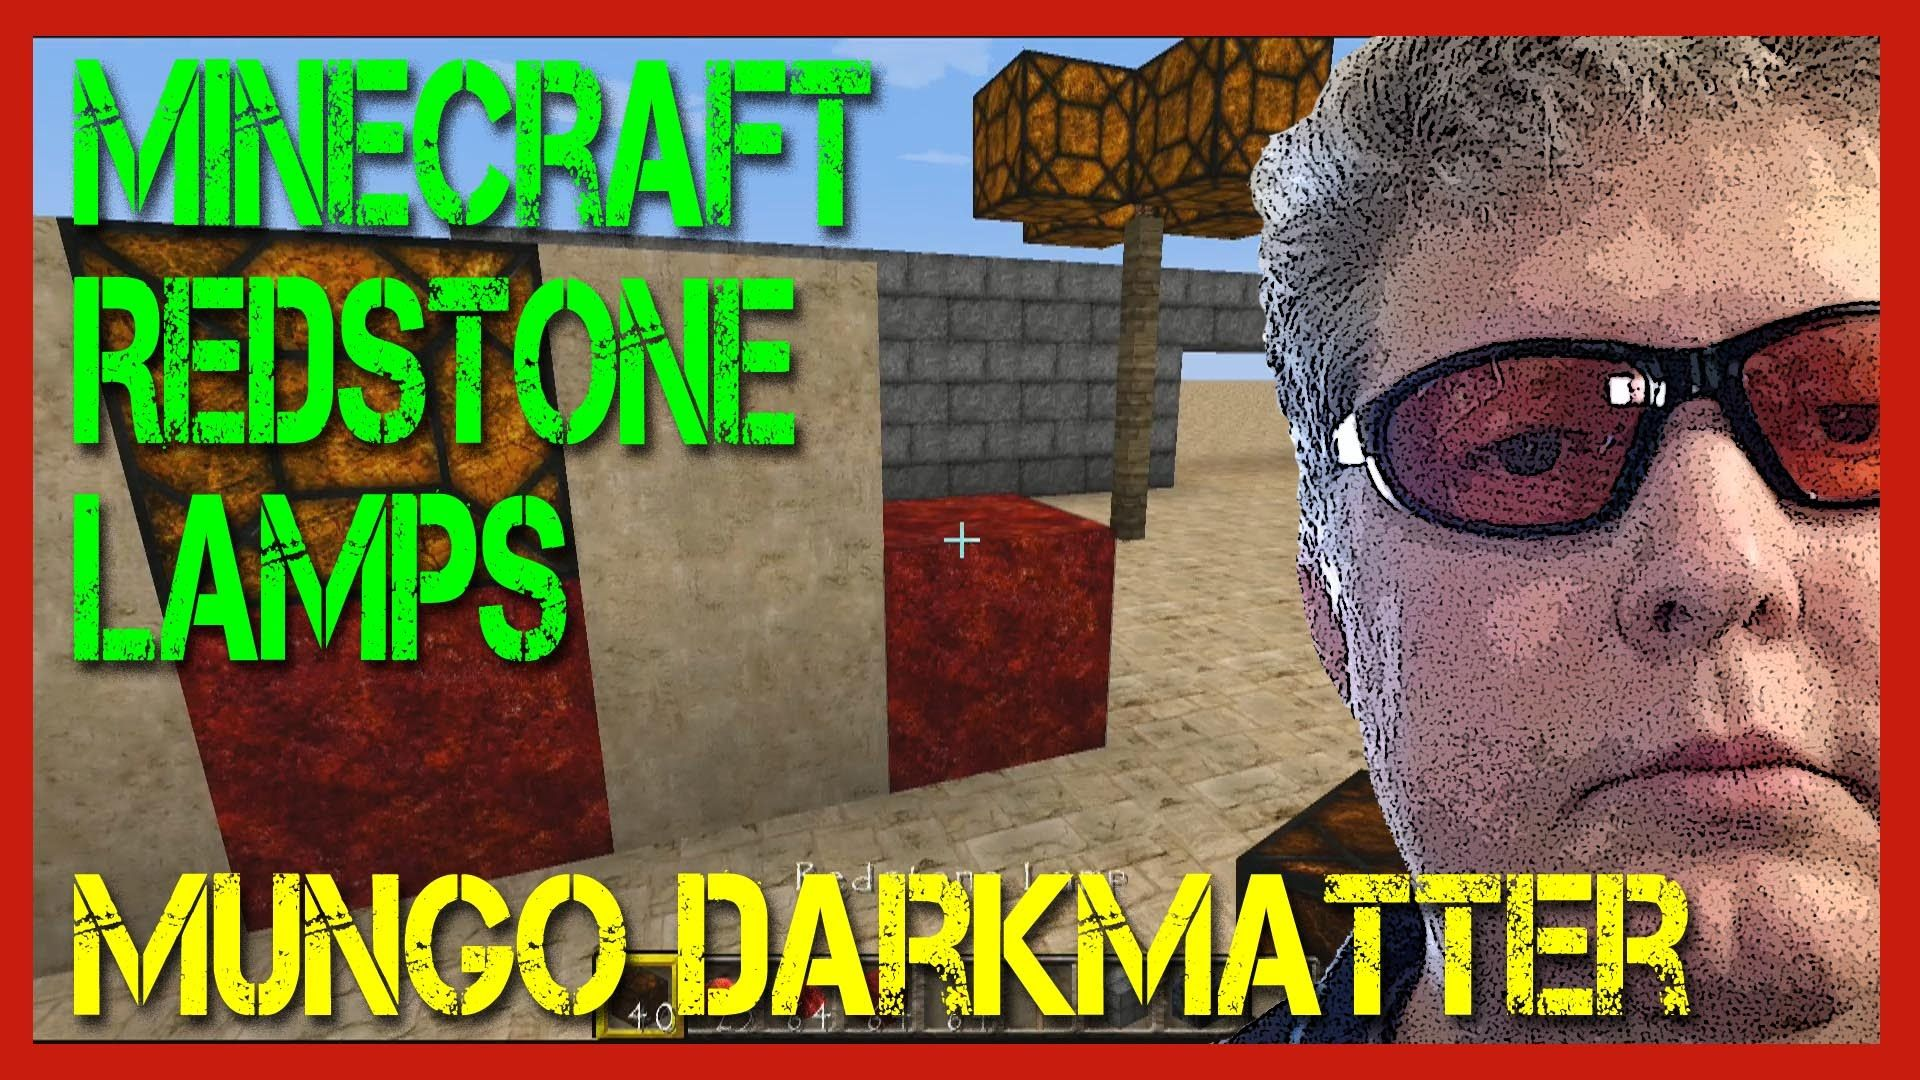 Redstone How To Use Redstone Lamps In Minecraft Mungo Darkmatter Shows How To Make And Use Redstone Lamps In Minecraft Redstone Minecraft Redstone Minecraft